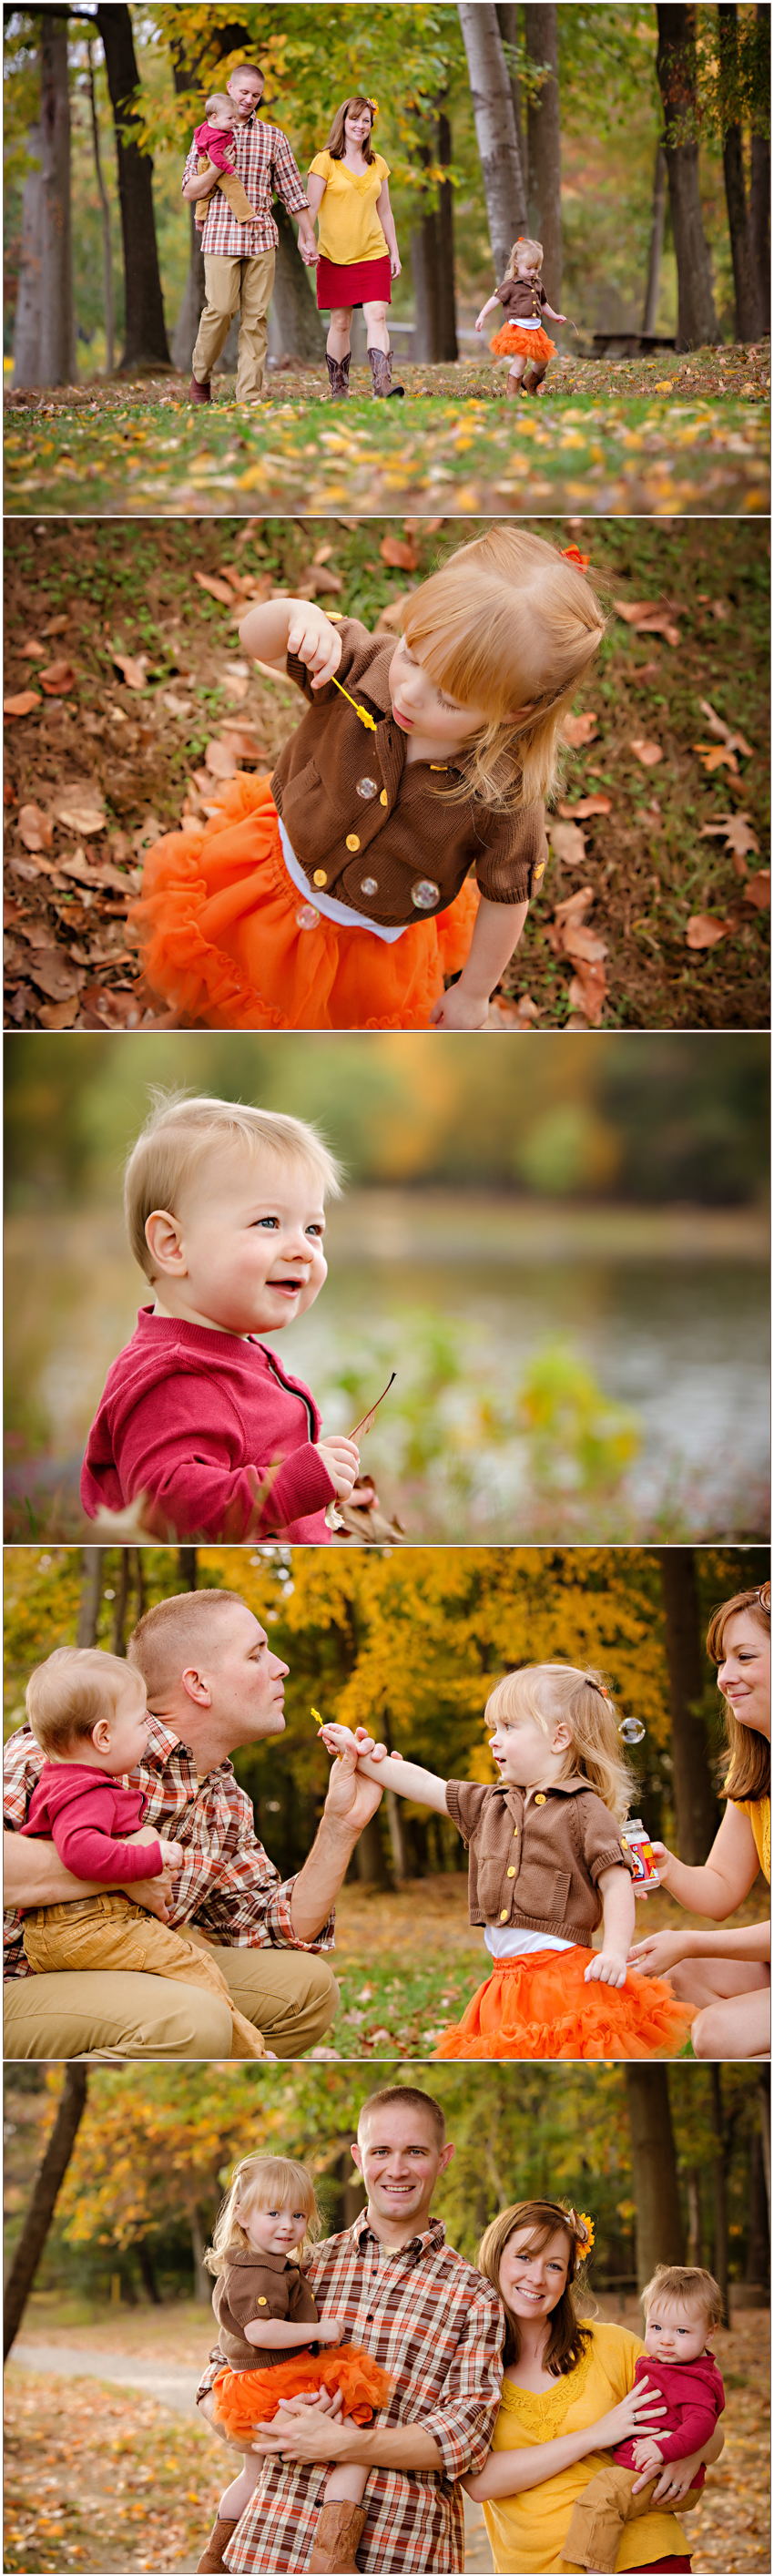 Wahxaw NC Family Photographer Carolyn Ann Ryan shares dreamy family portraits